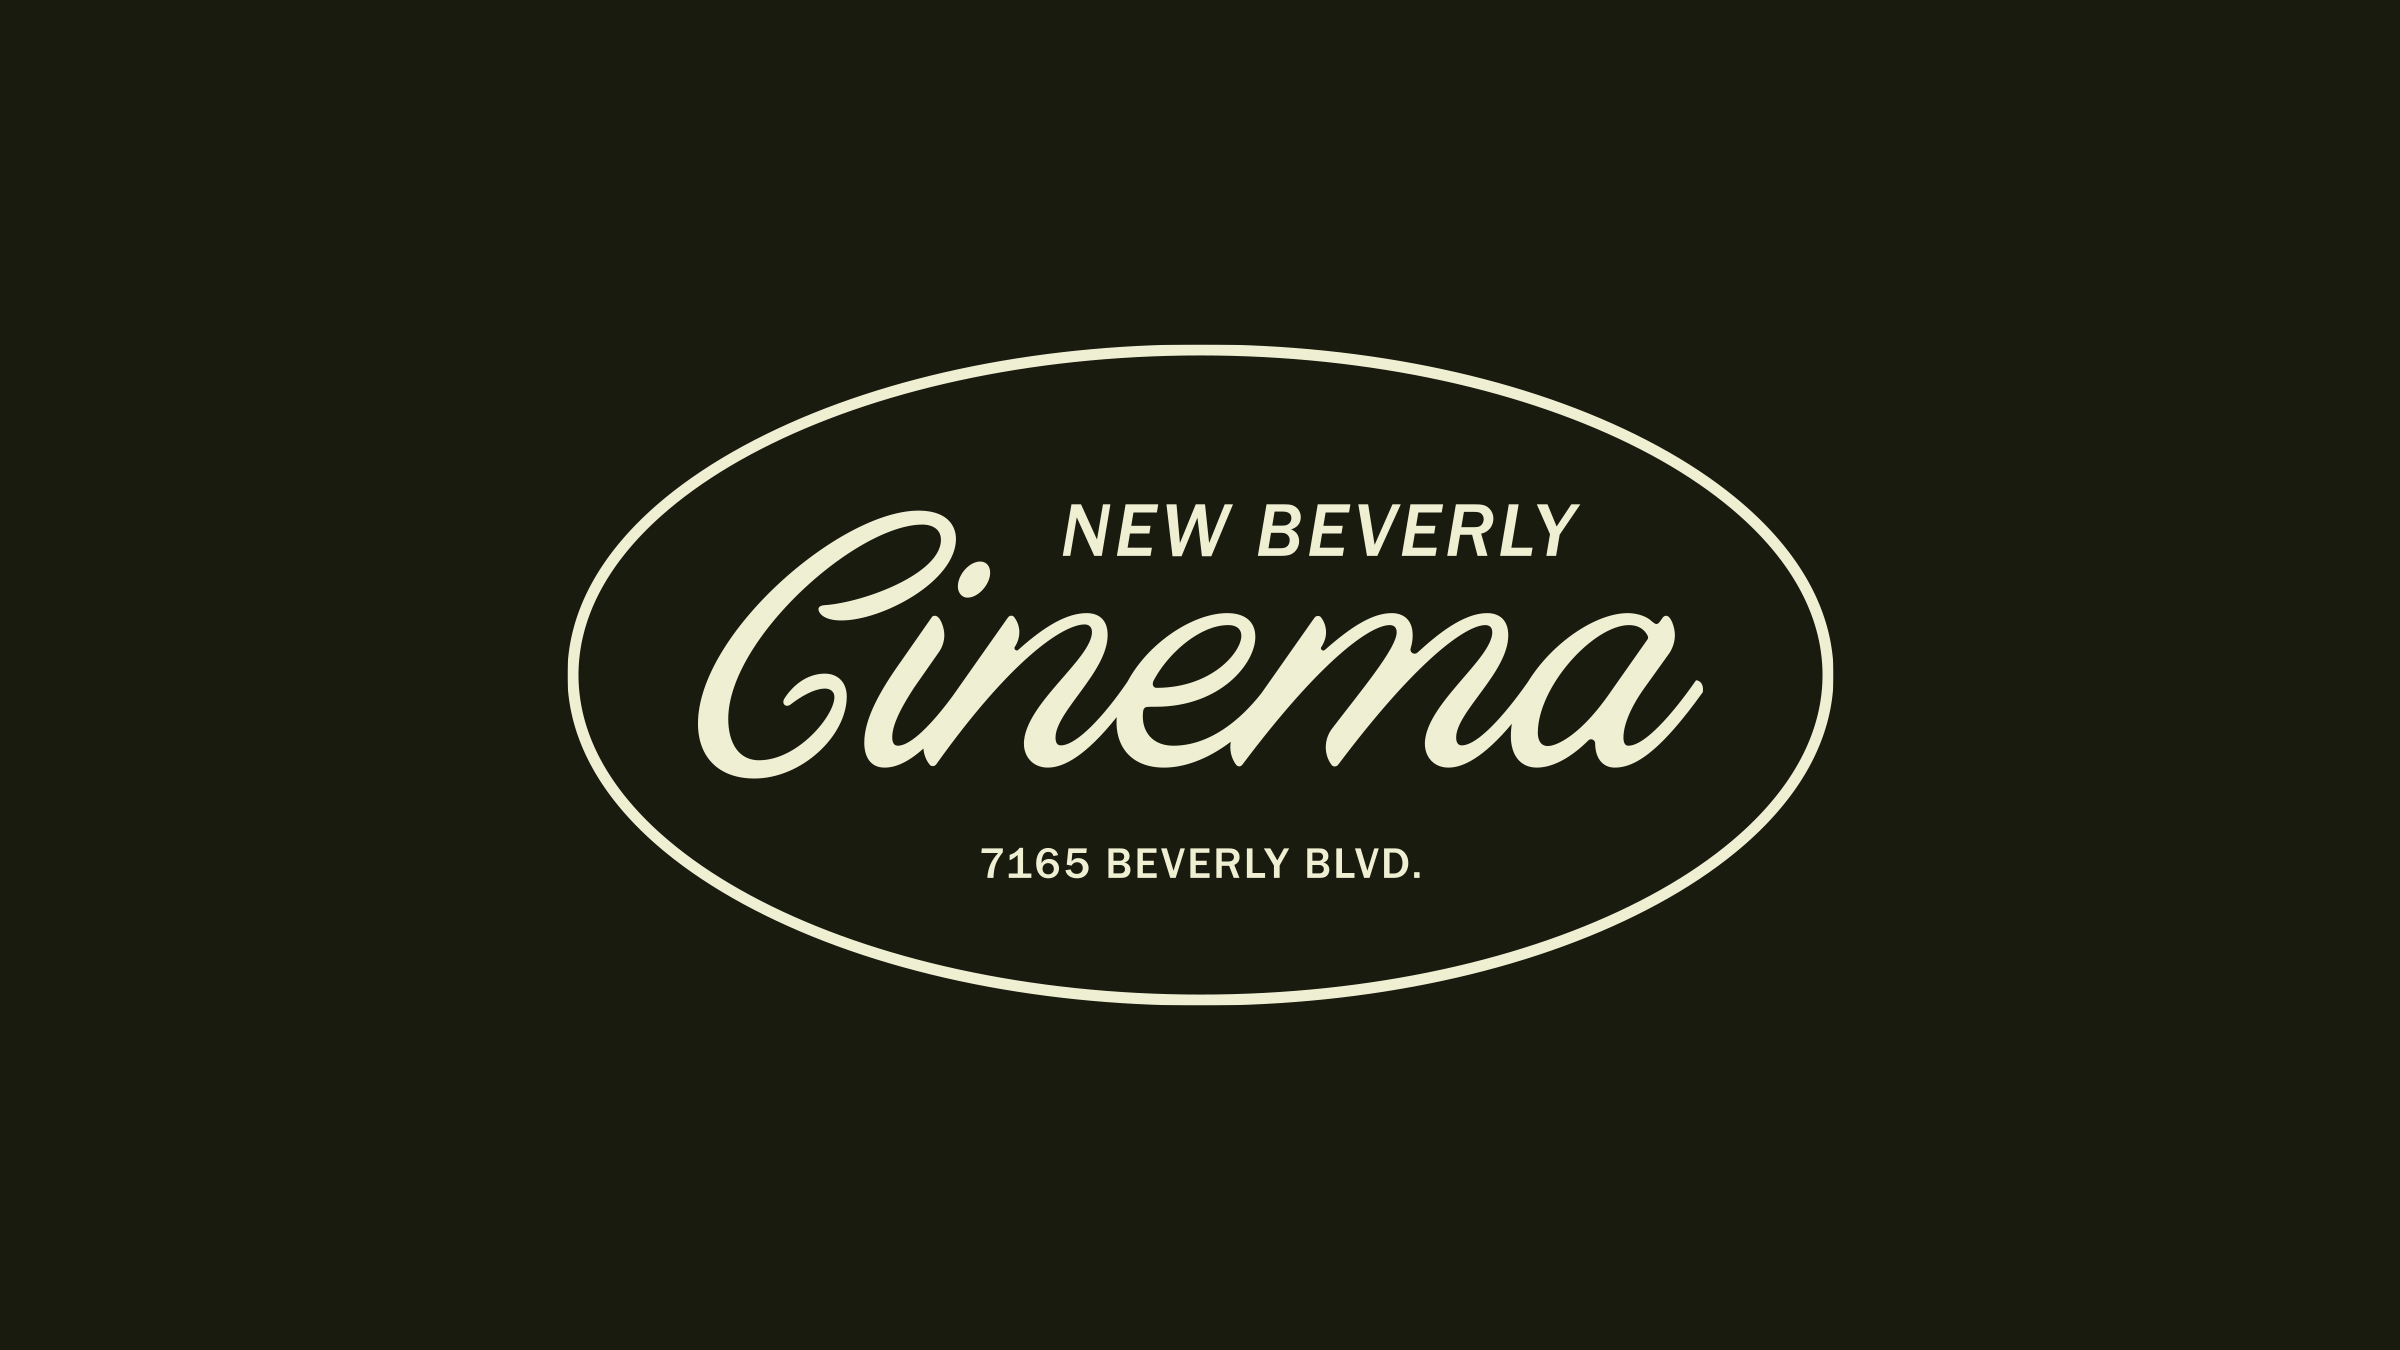 New Bev Cinema brand logo cream on black